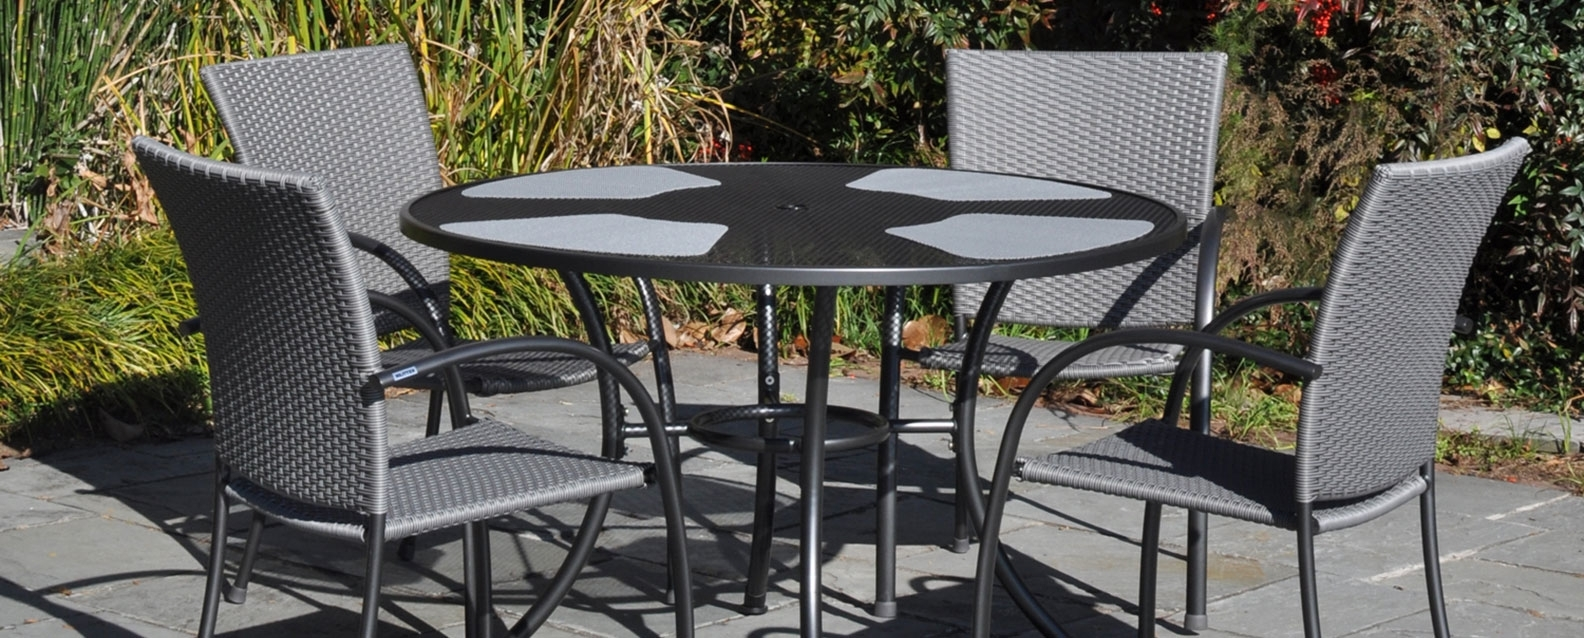 Summer House Patio Pertaining To Popular Kettler Patio Umbrellas (View 18 of 20)